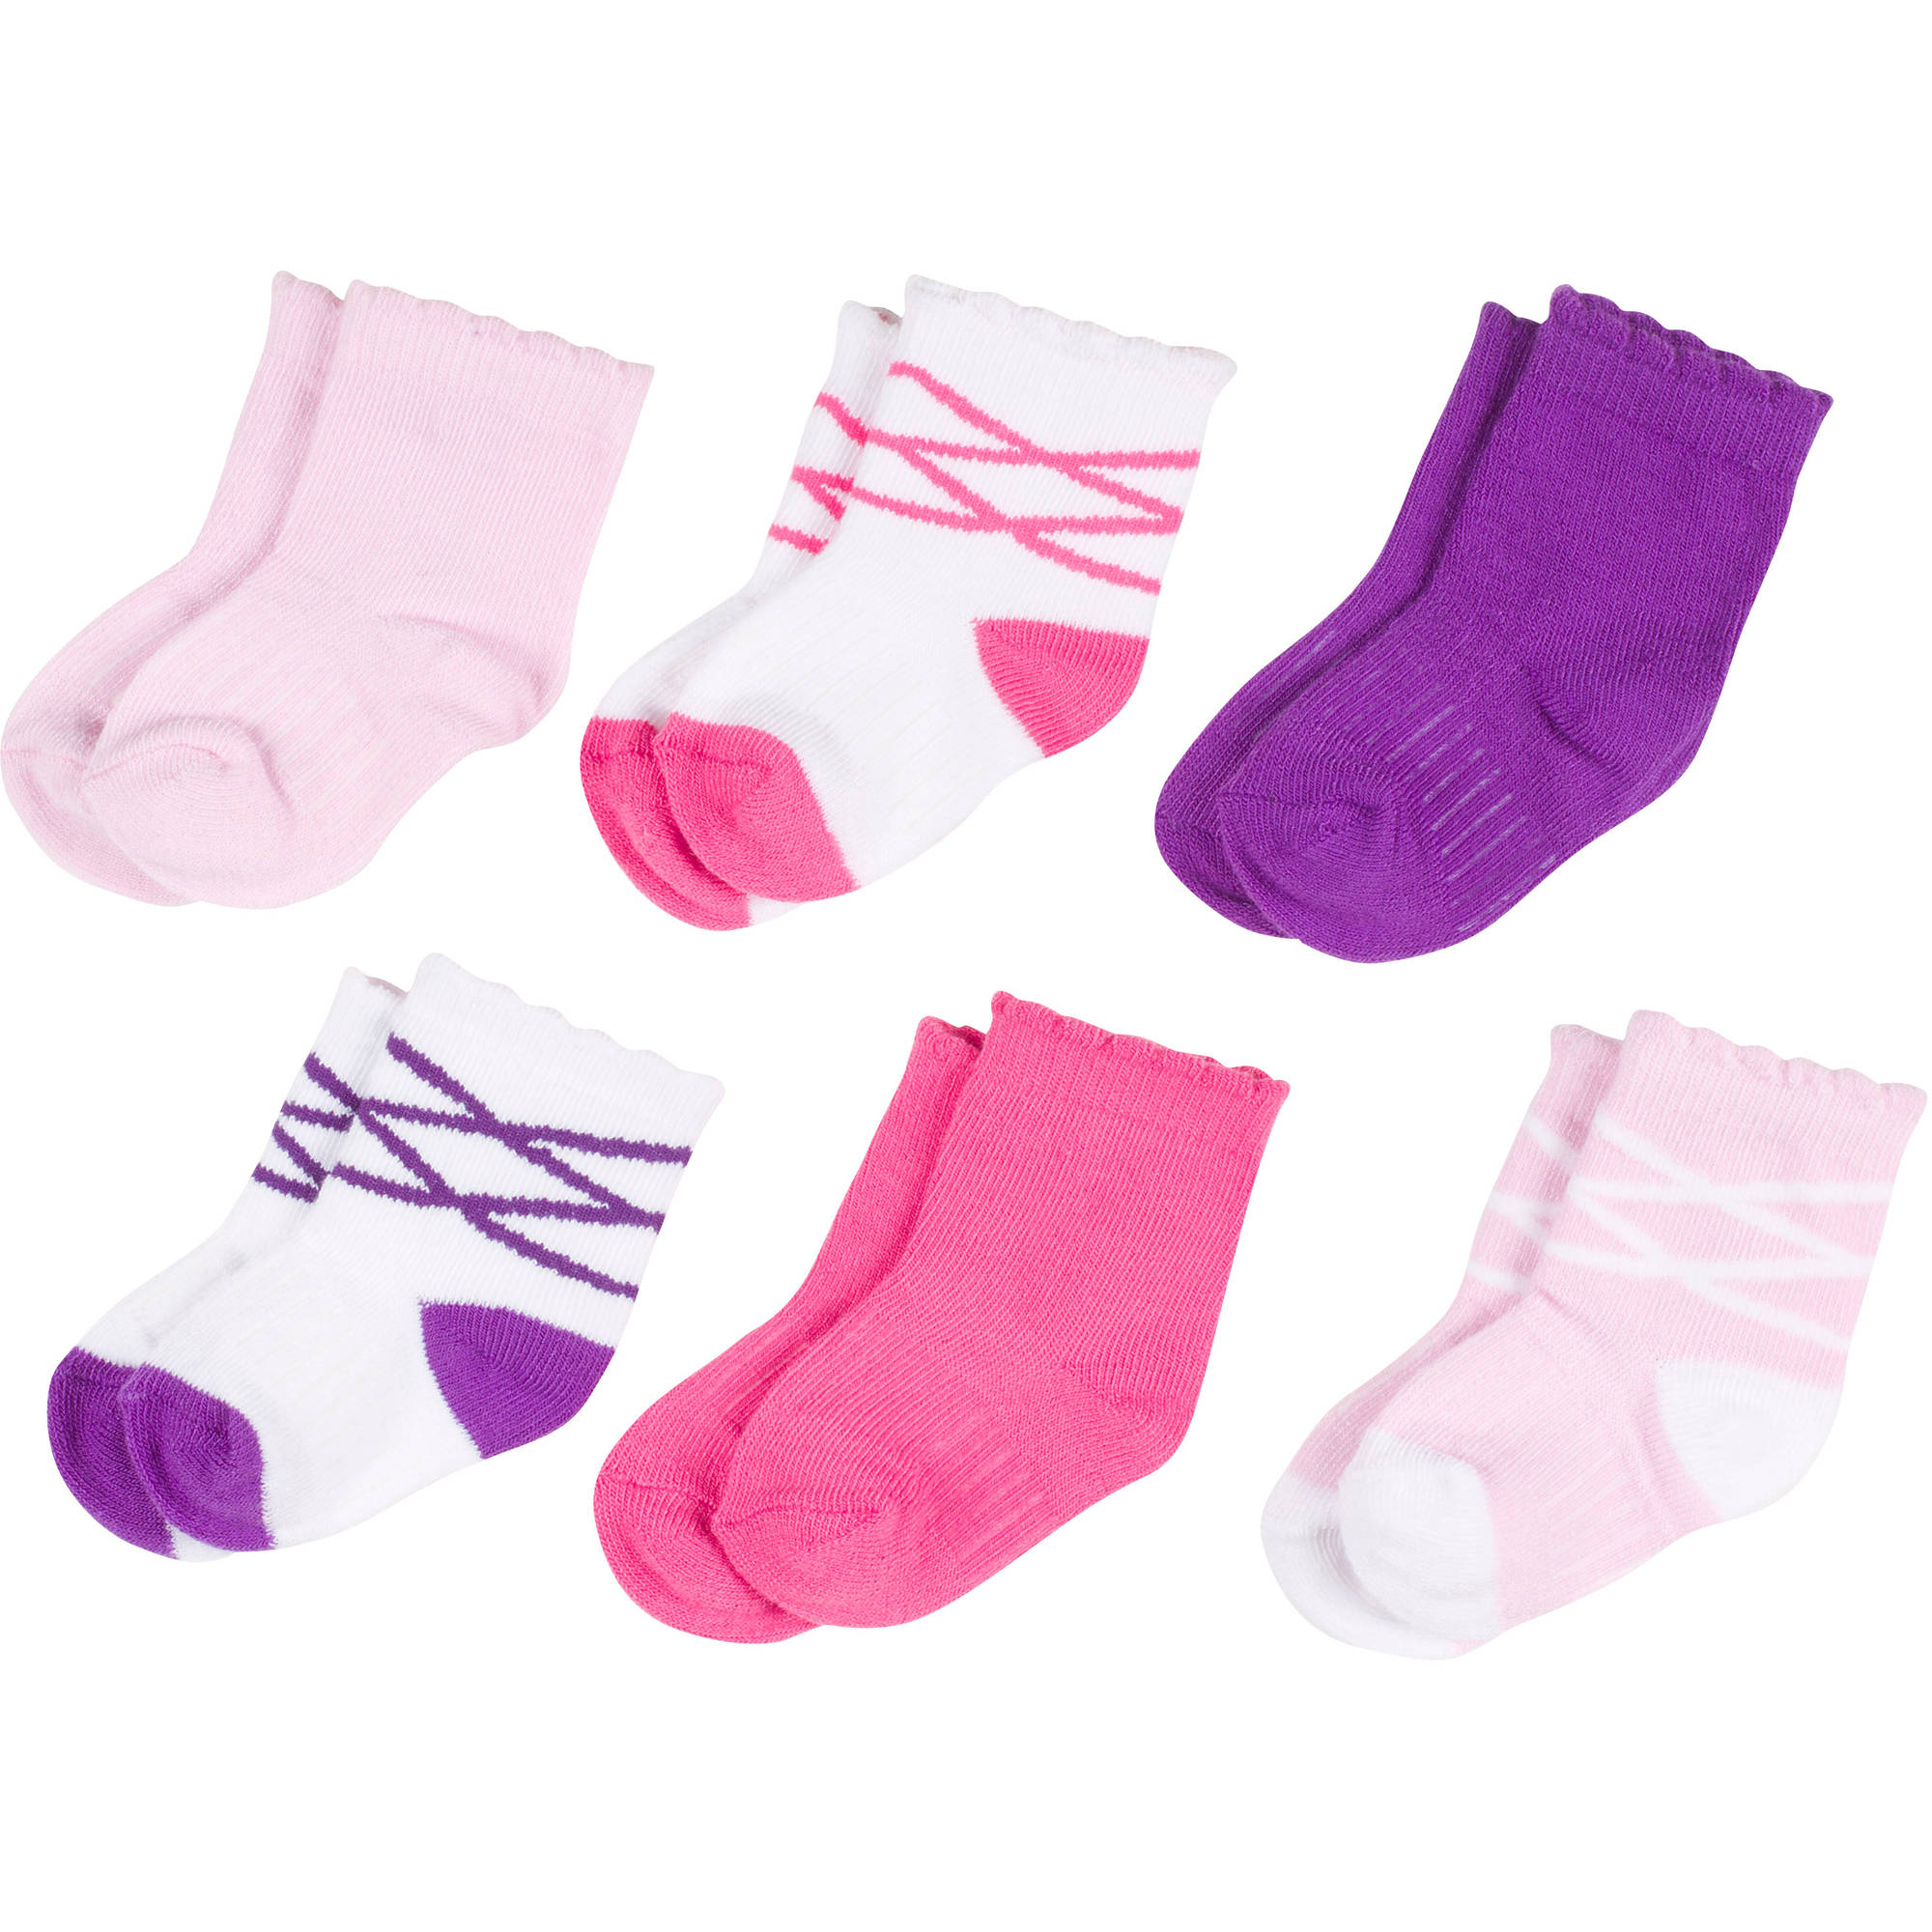 Growing Socks Newborn Baby 0-24 Months 6 Pair Ballerina Lace Up Assortment